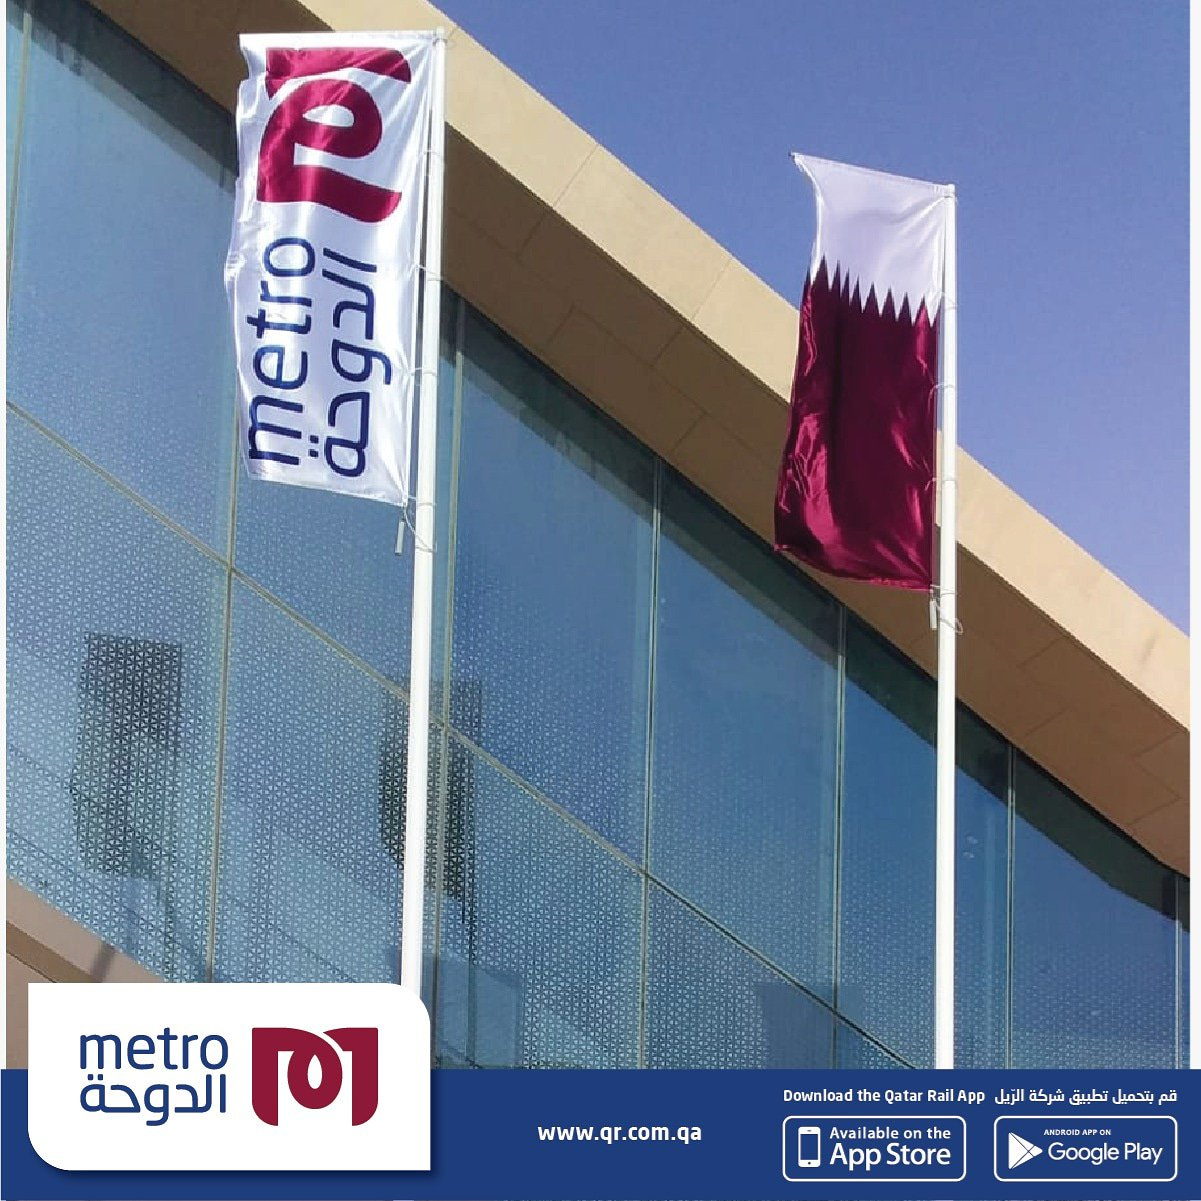 Doha Metro Carry Flags in Stations which are under operations